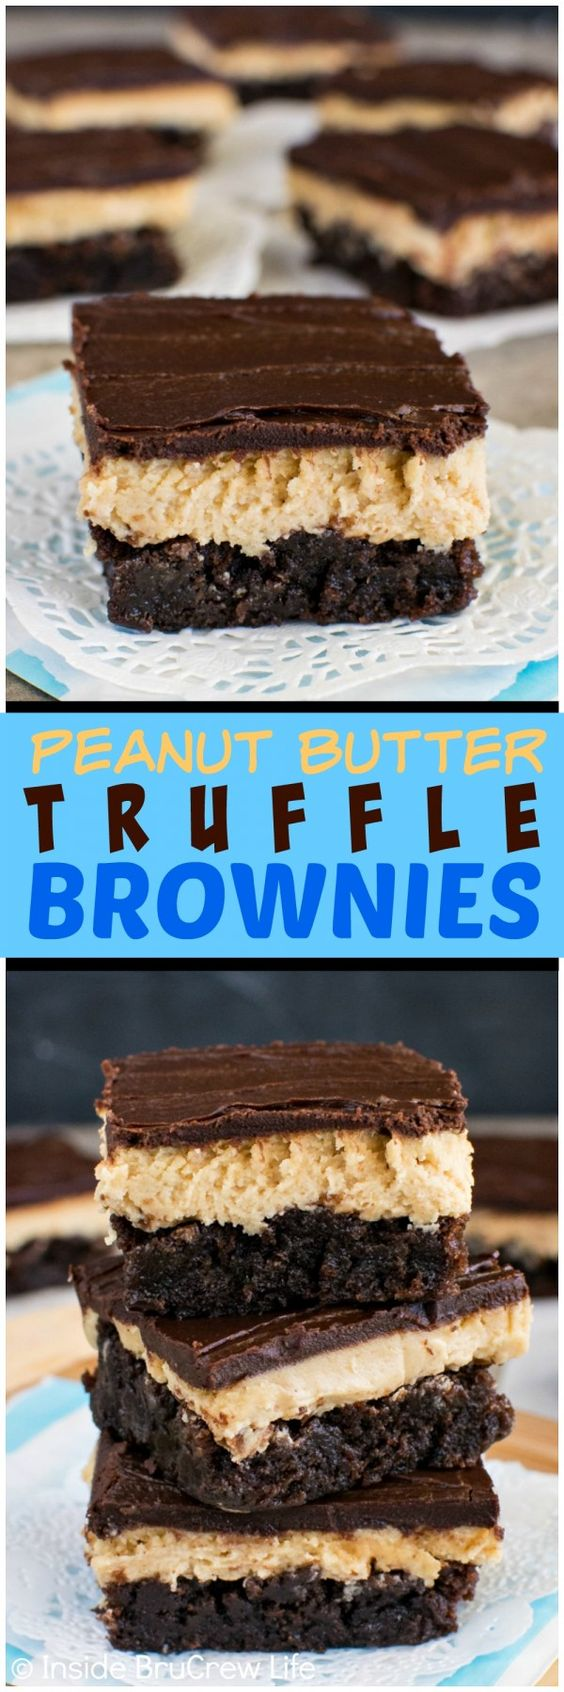 Peanut Butter Truffle Brownies - layers of chocolate and peanut butter ...